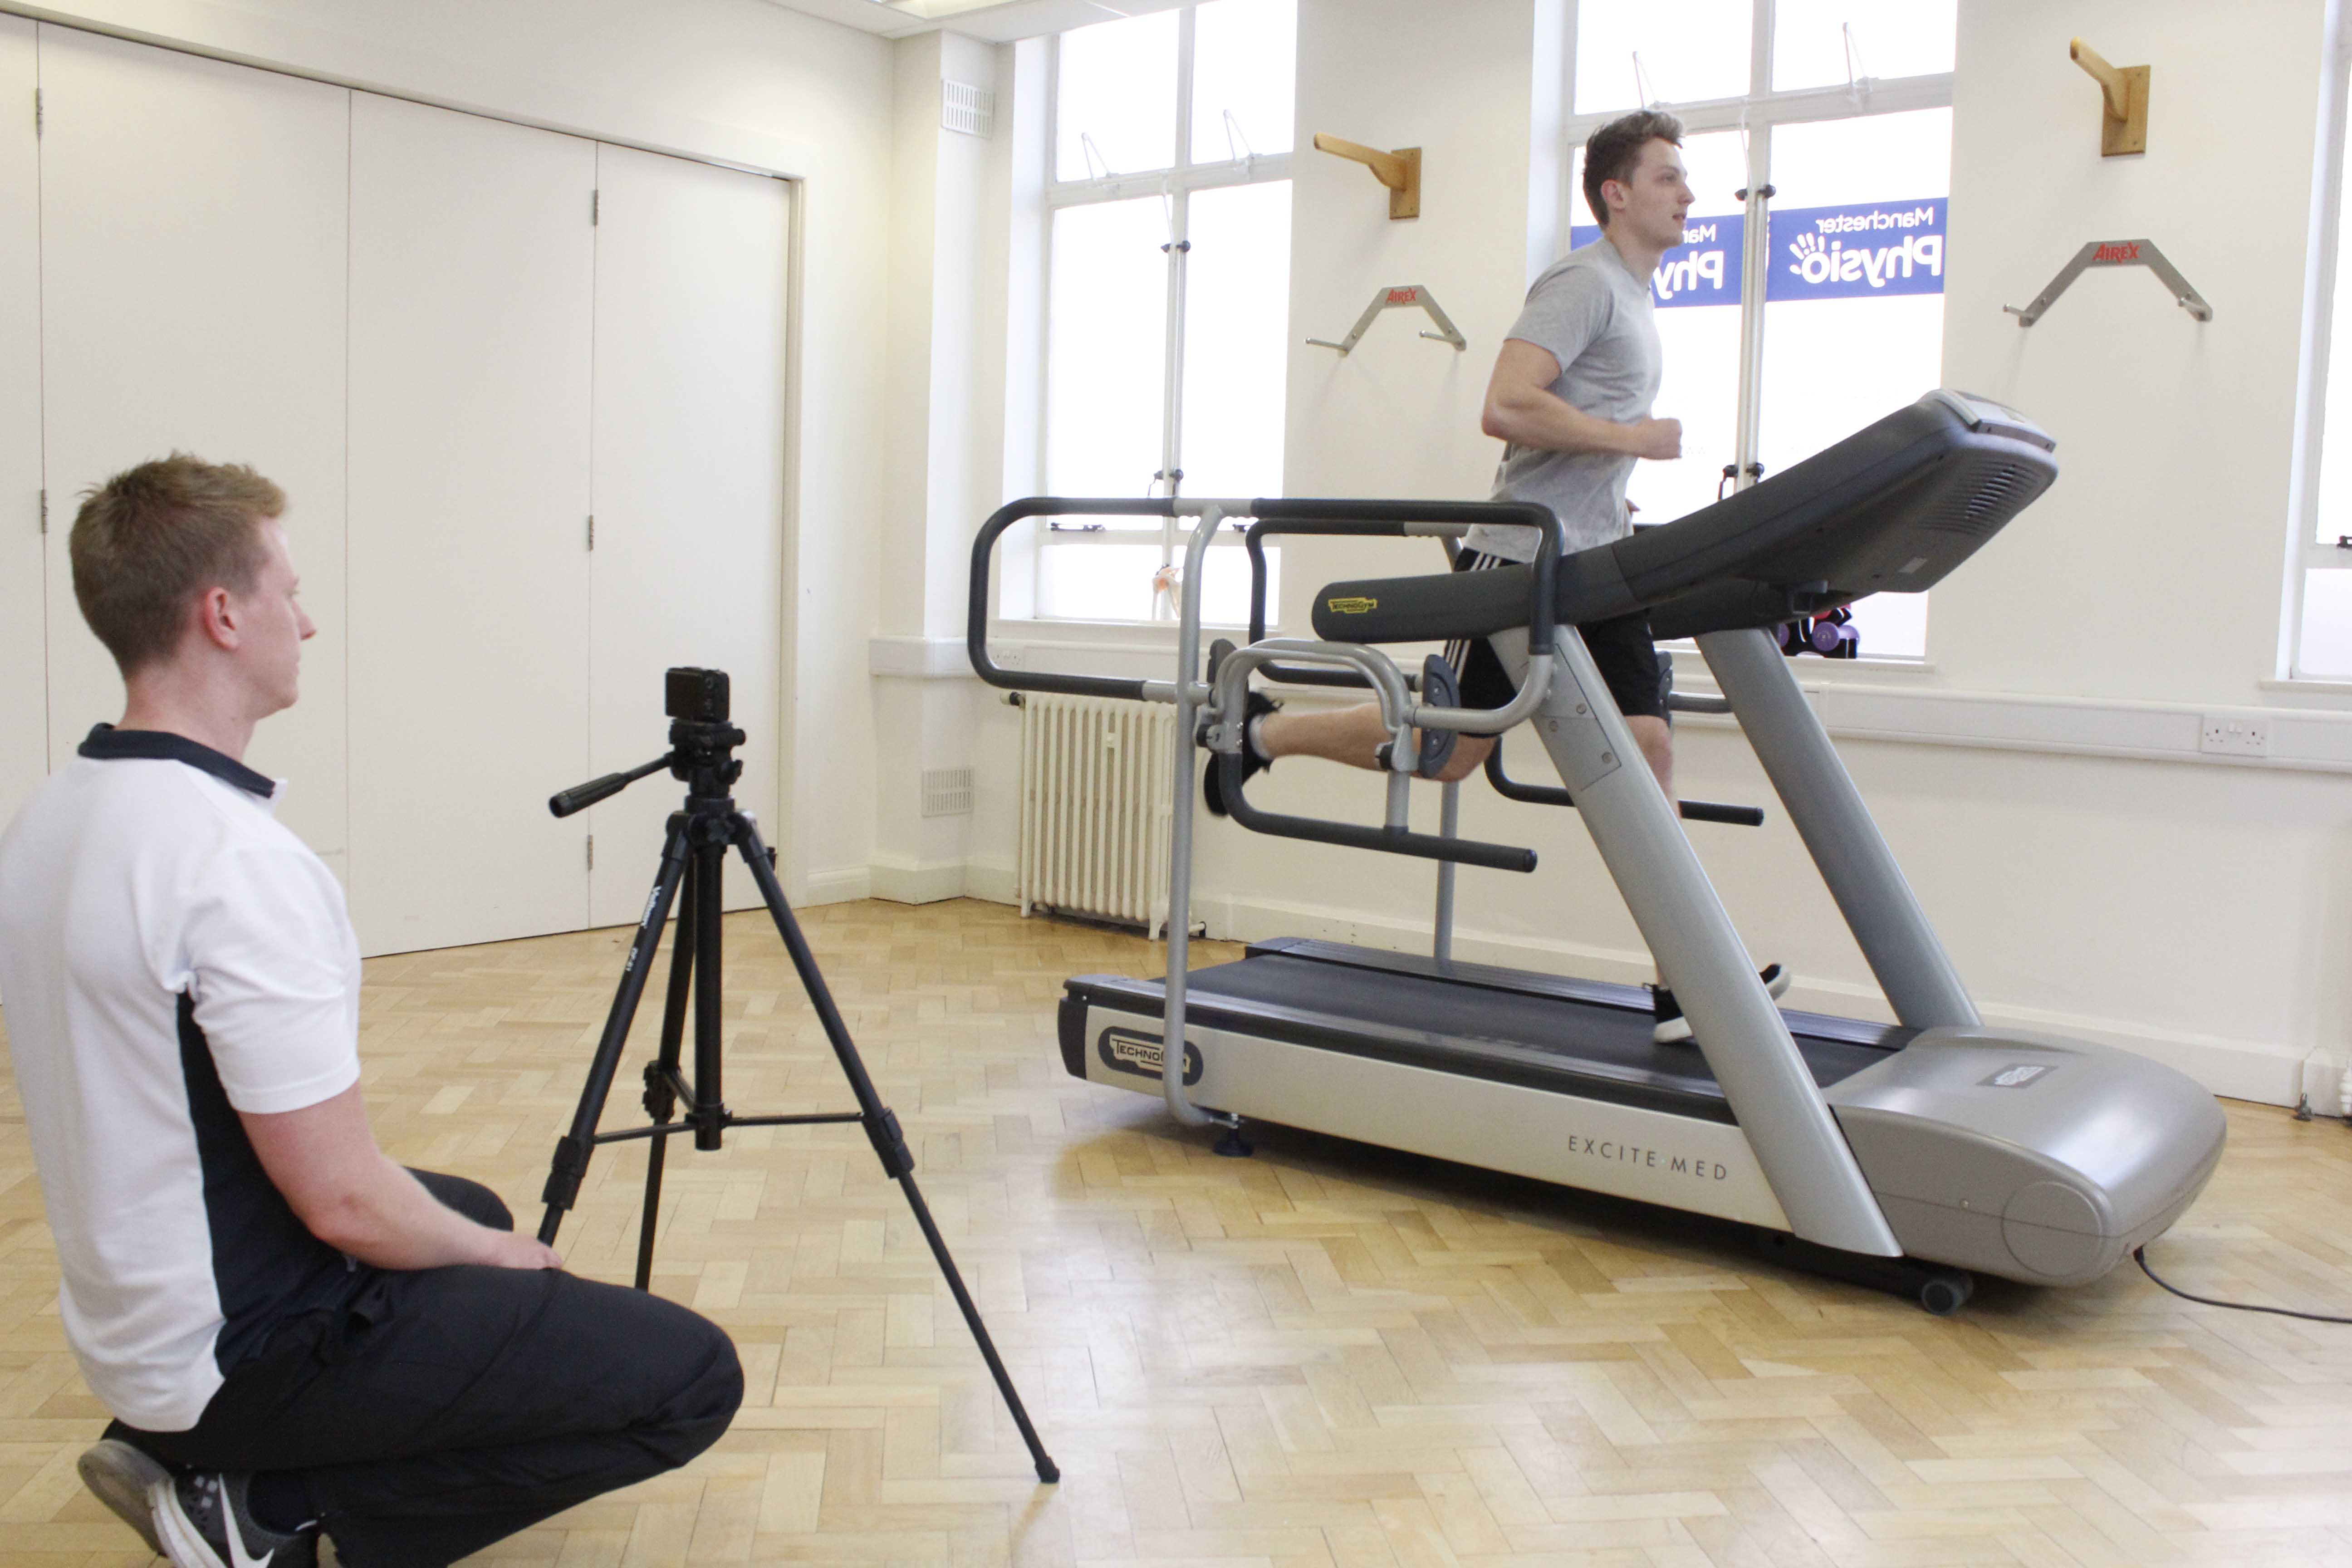 Specilaist physiotherapist conducting a biomechanical assessment of a client's gait pattern